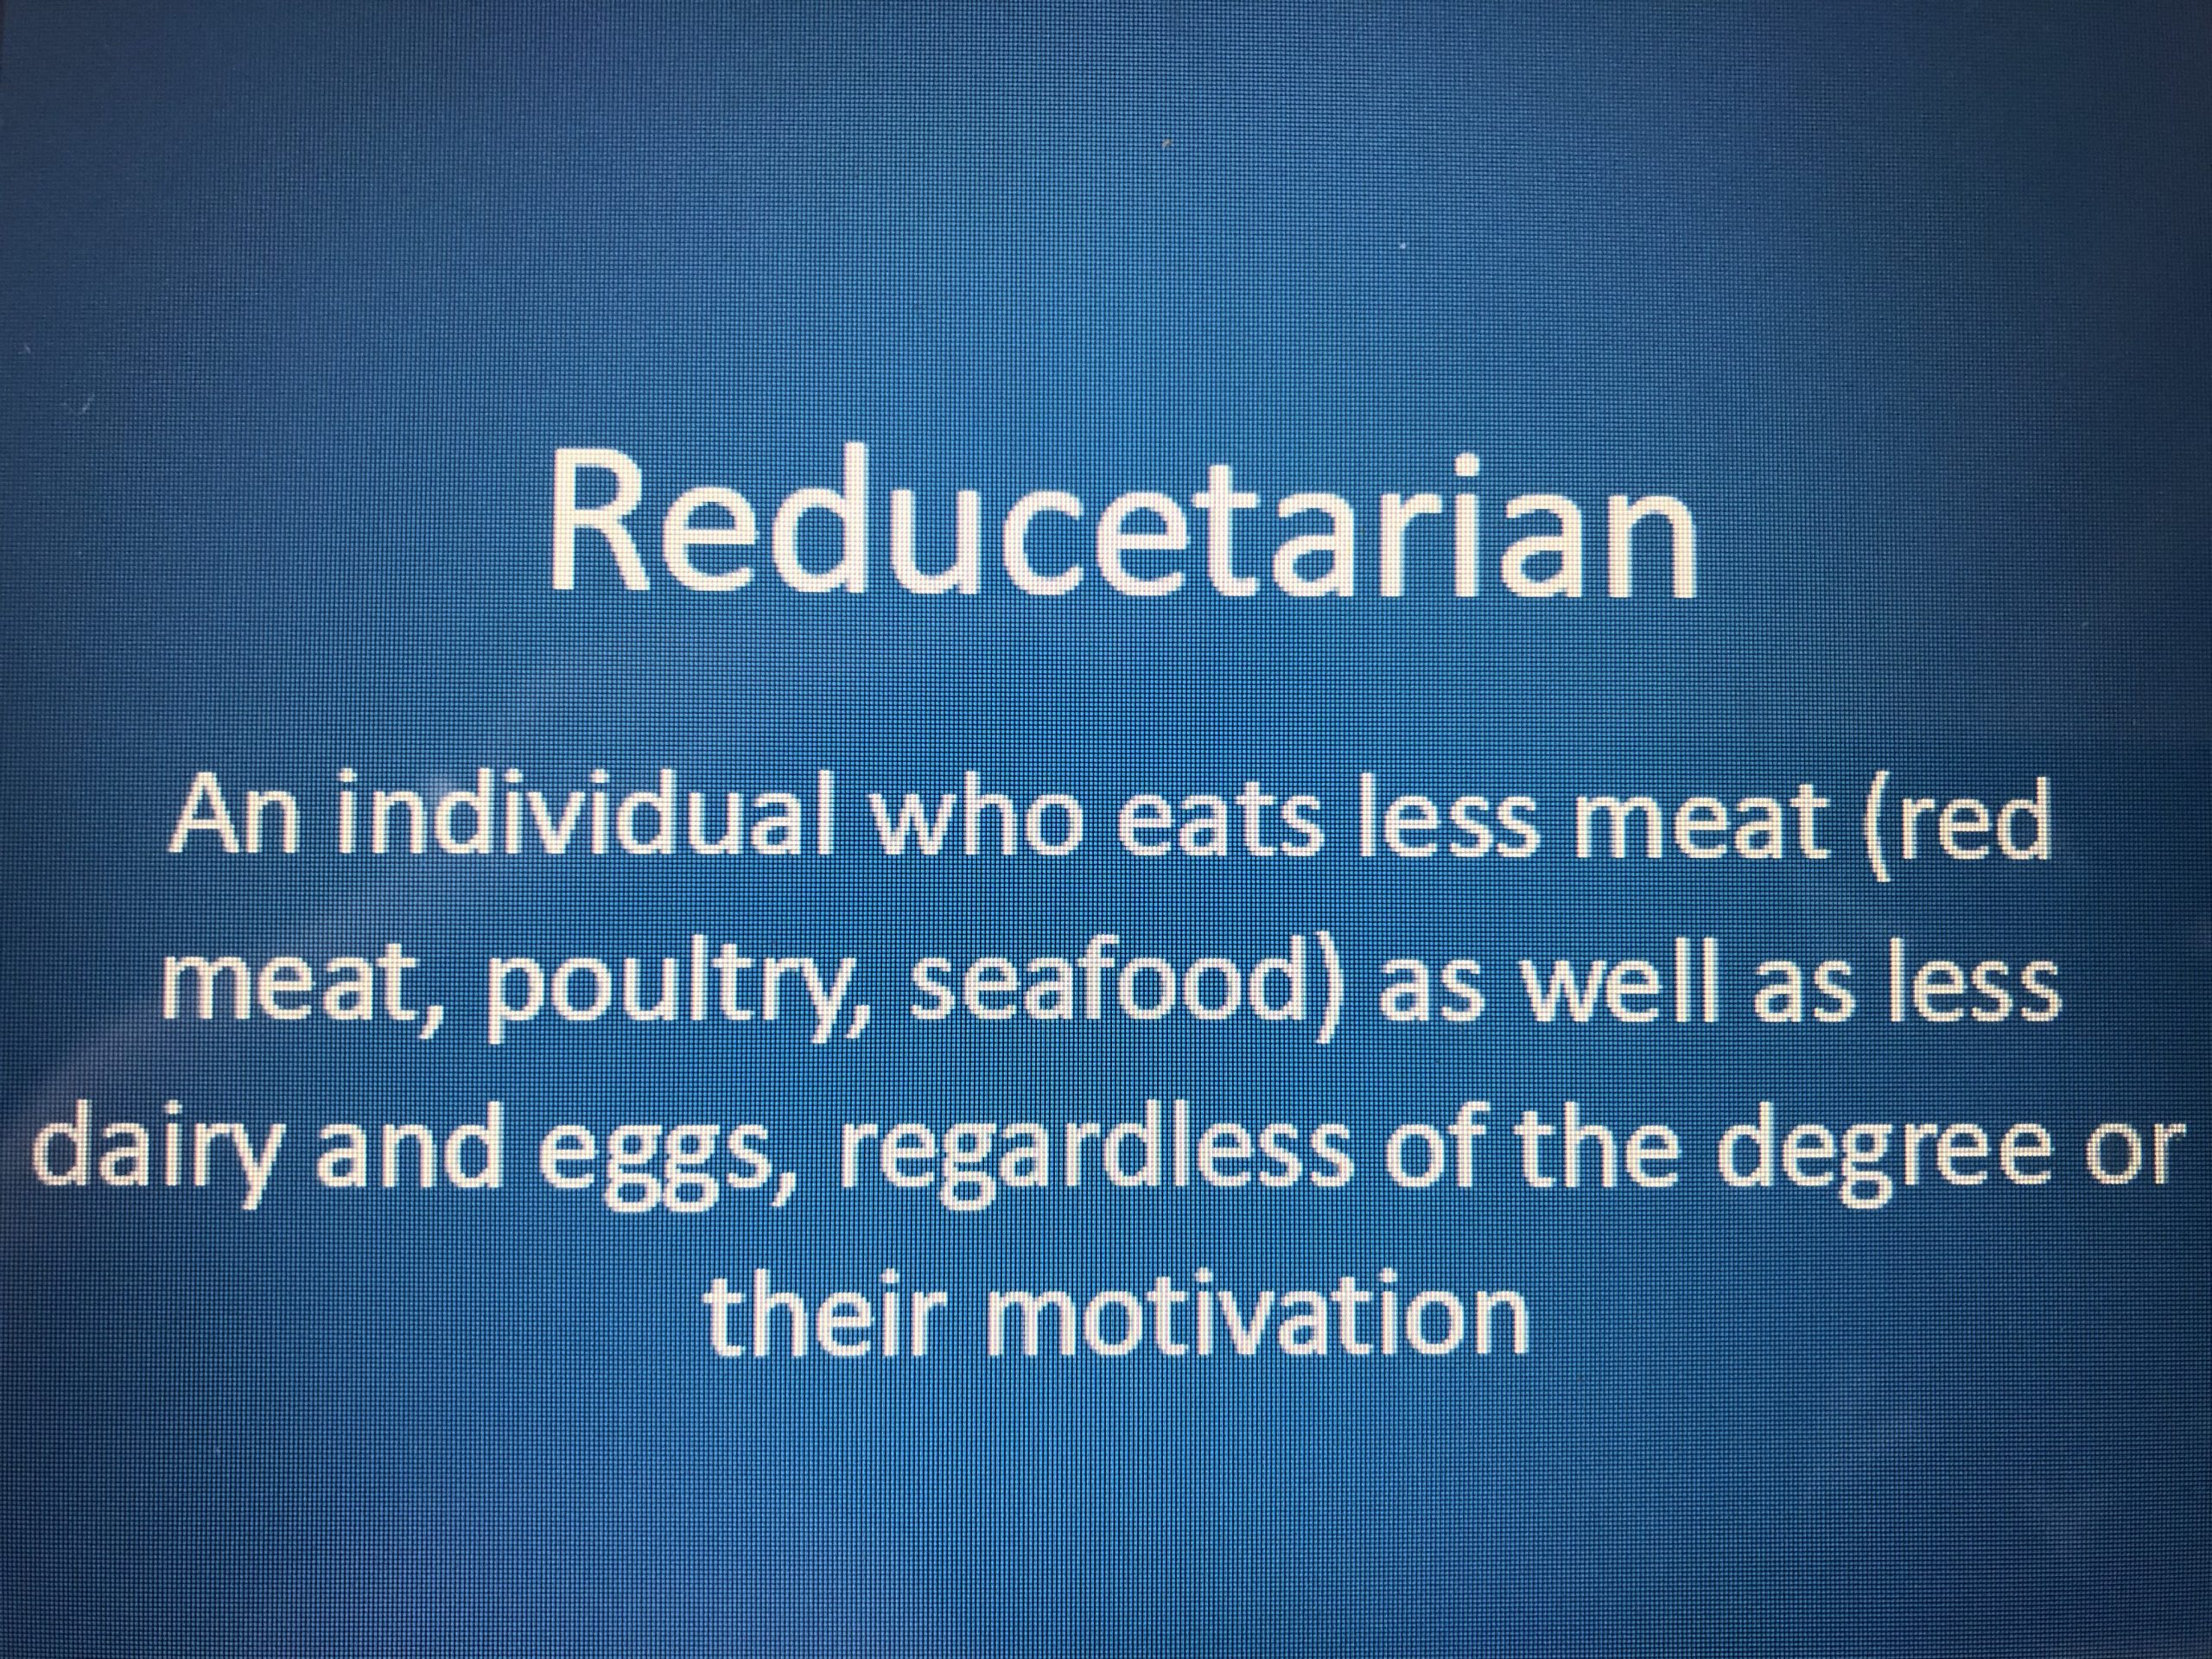 Reduce your meat consumption